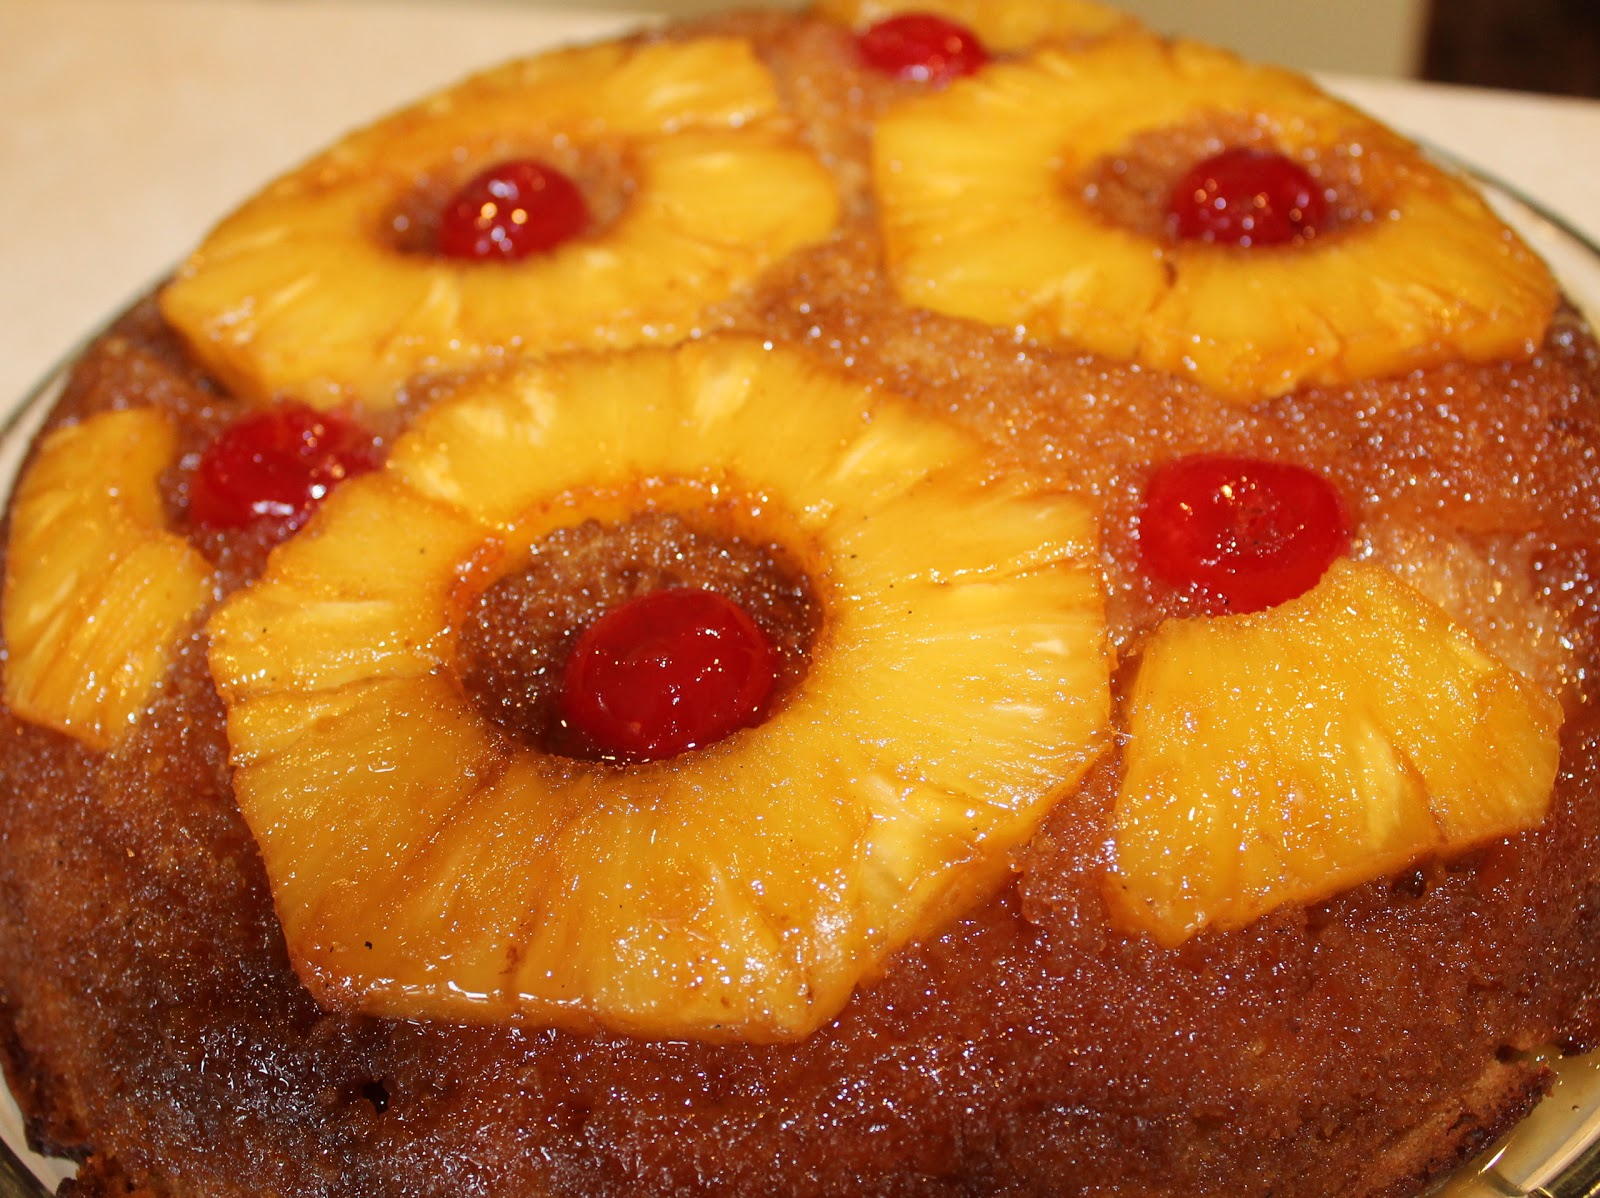 Skillet Pineapple Upside Down Cake - Just~One~Donna